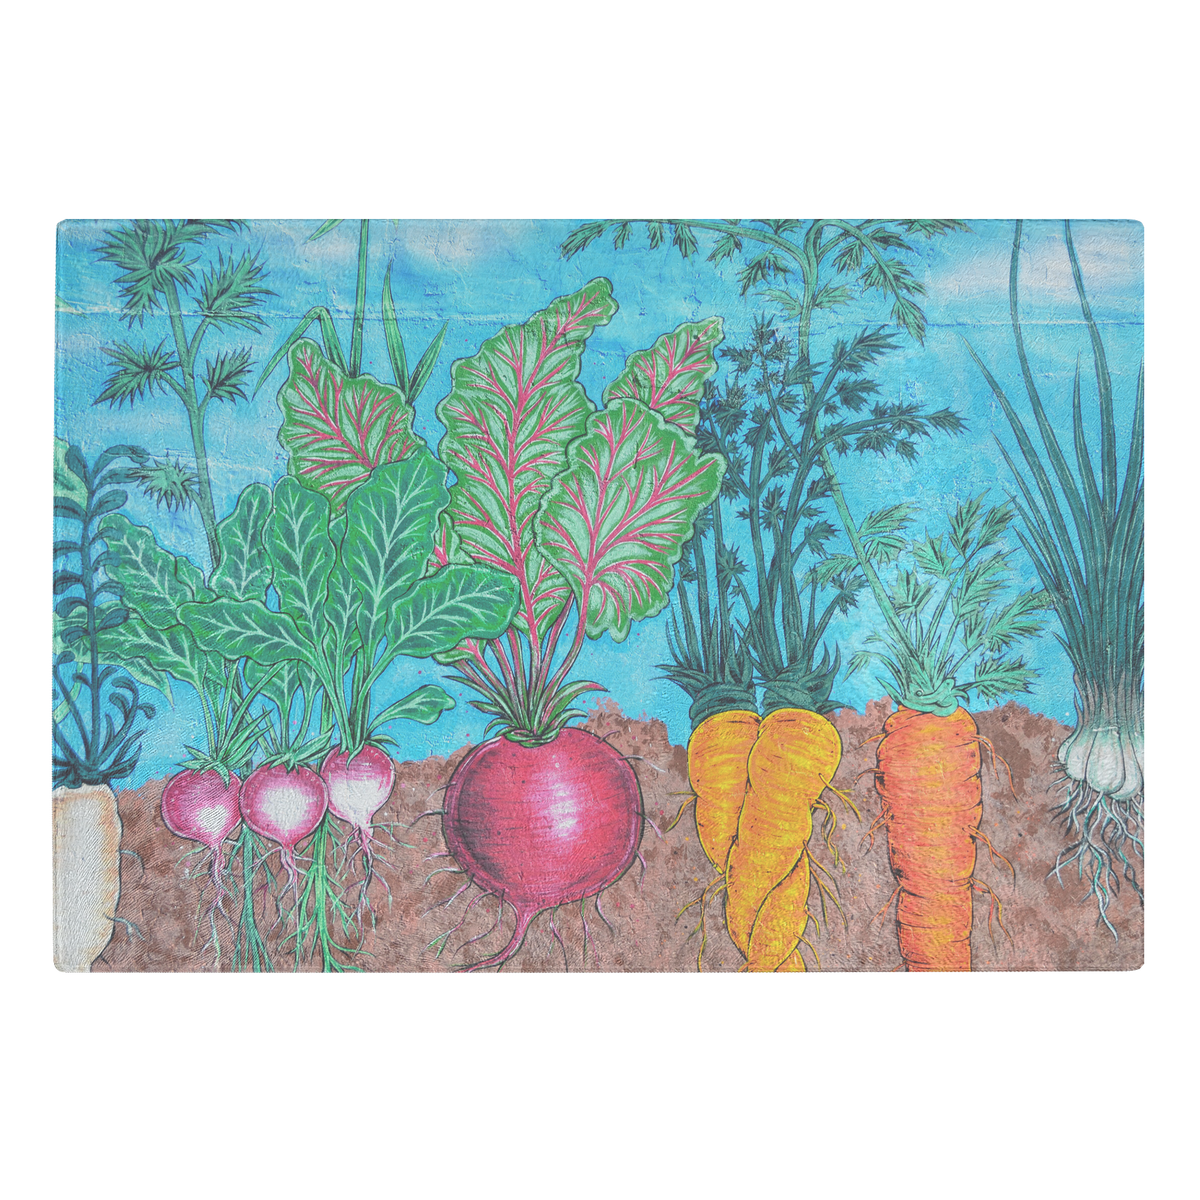 The root vegetables- glass cutting board